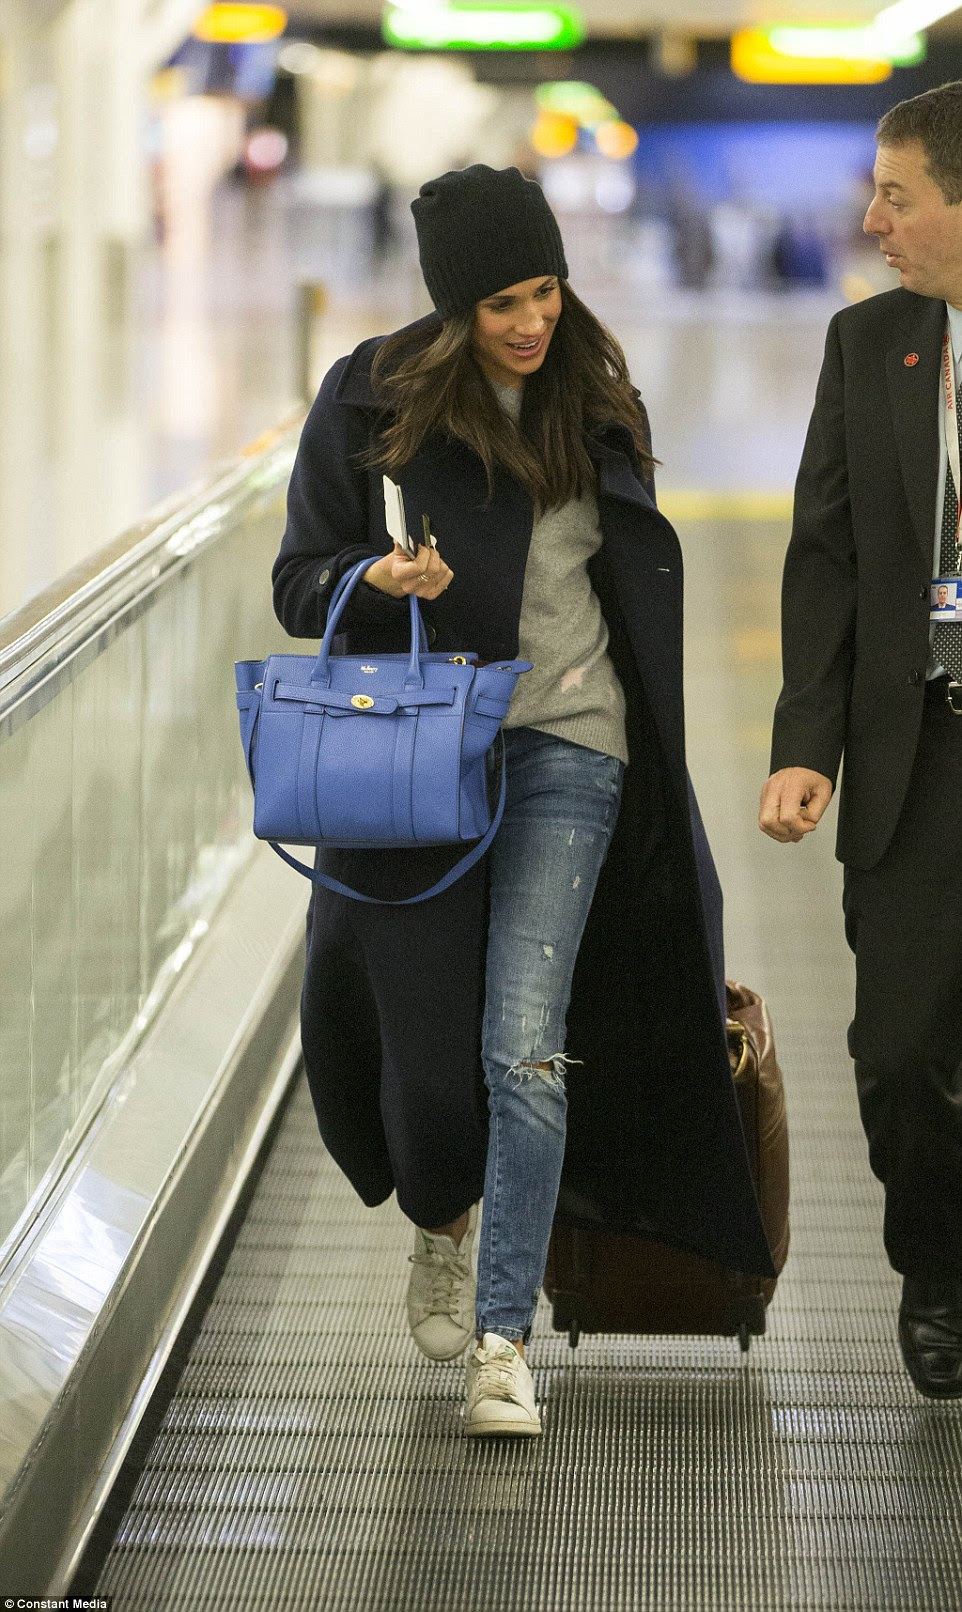 Meghan Markle was spotted at Heathrow airport before boarding a flight back to Canada as she and Harry go their separate ways for Christmas